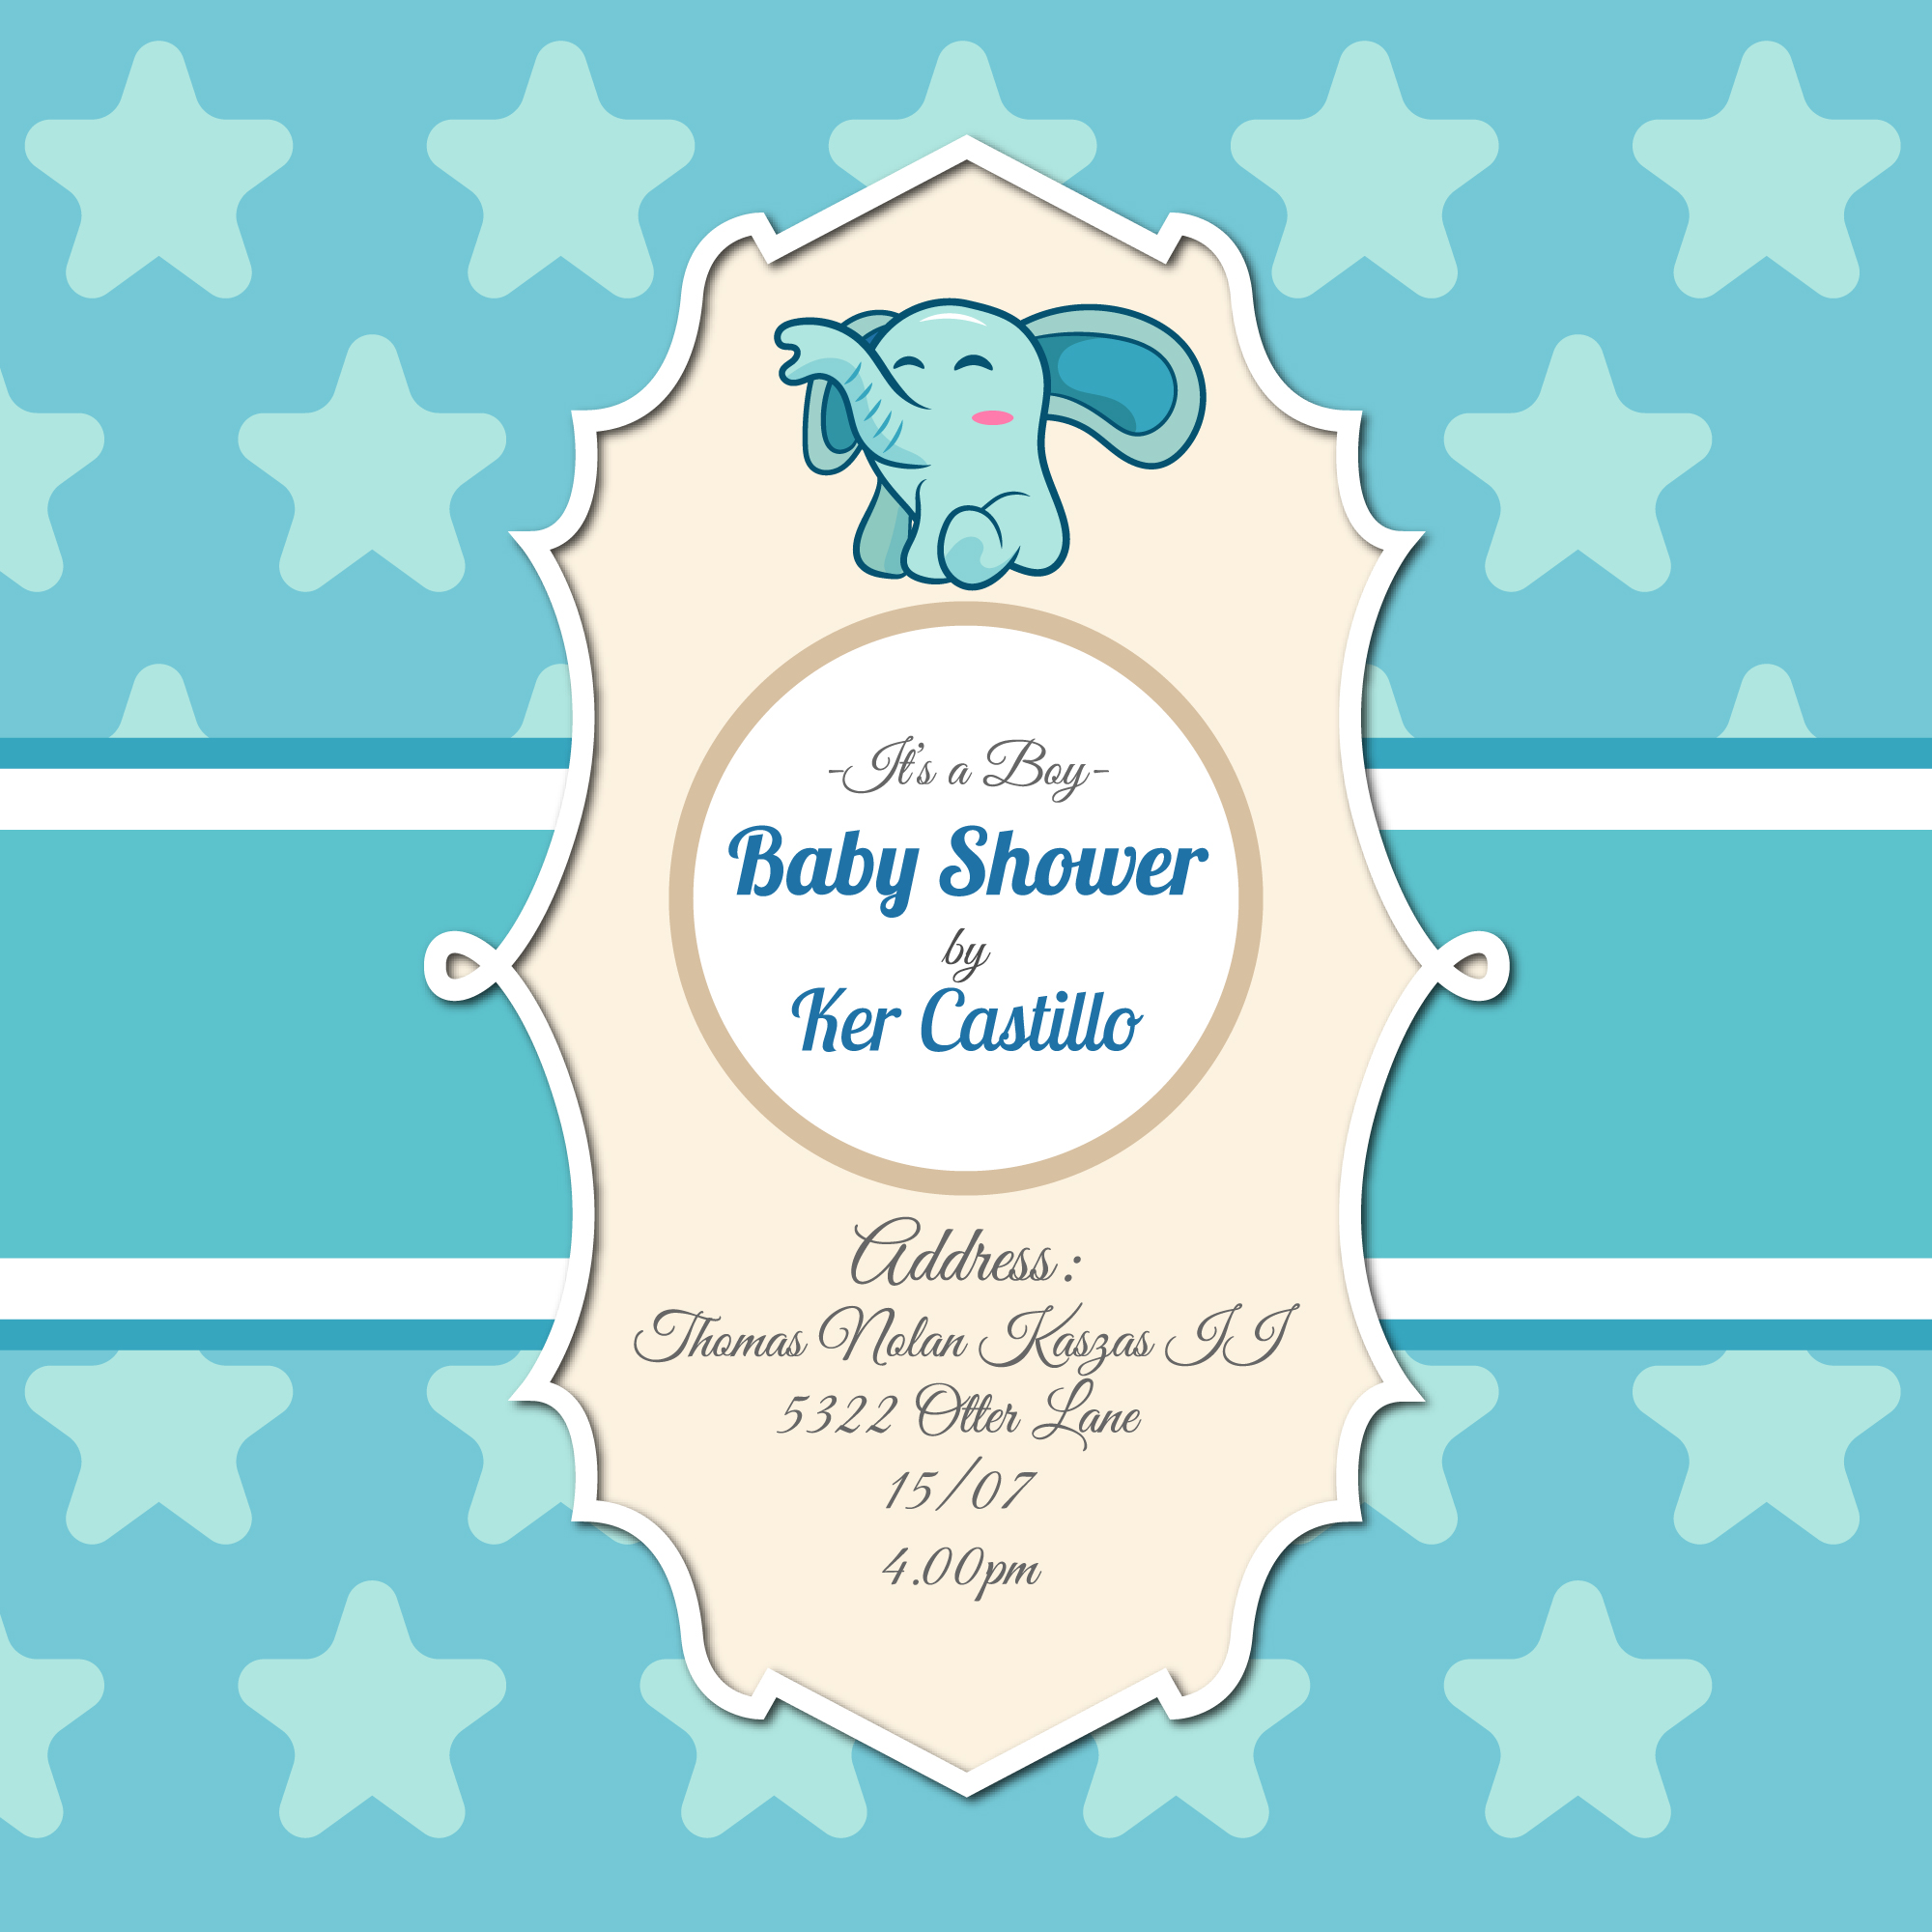 invitation de baby shower avec l phant